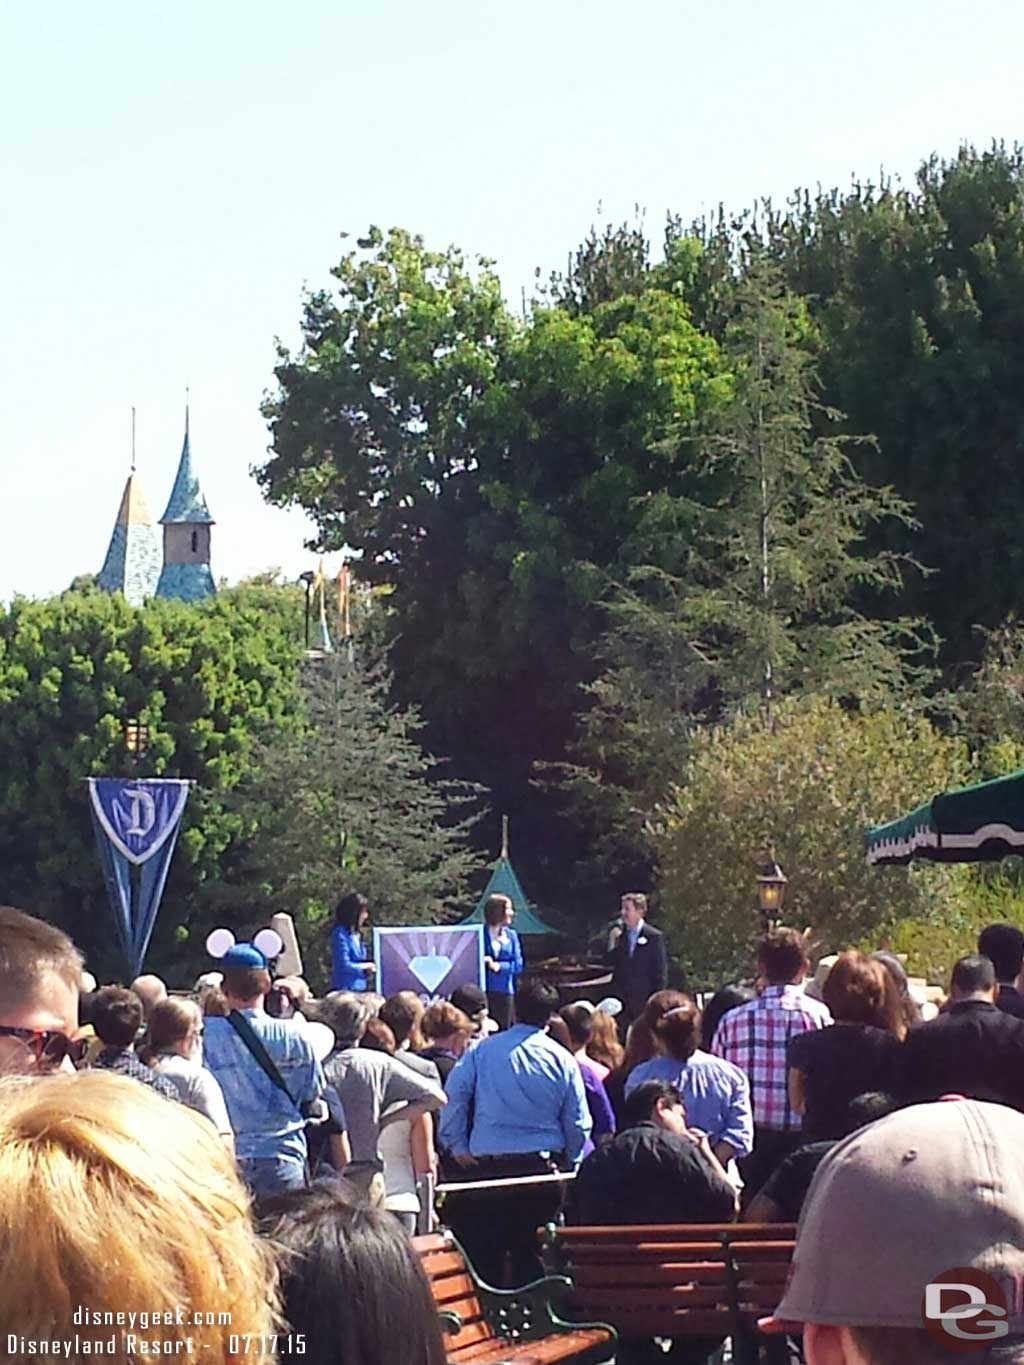 Michael Colglazier opening the #Disneyland60 event announcing a new grant program